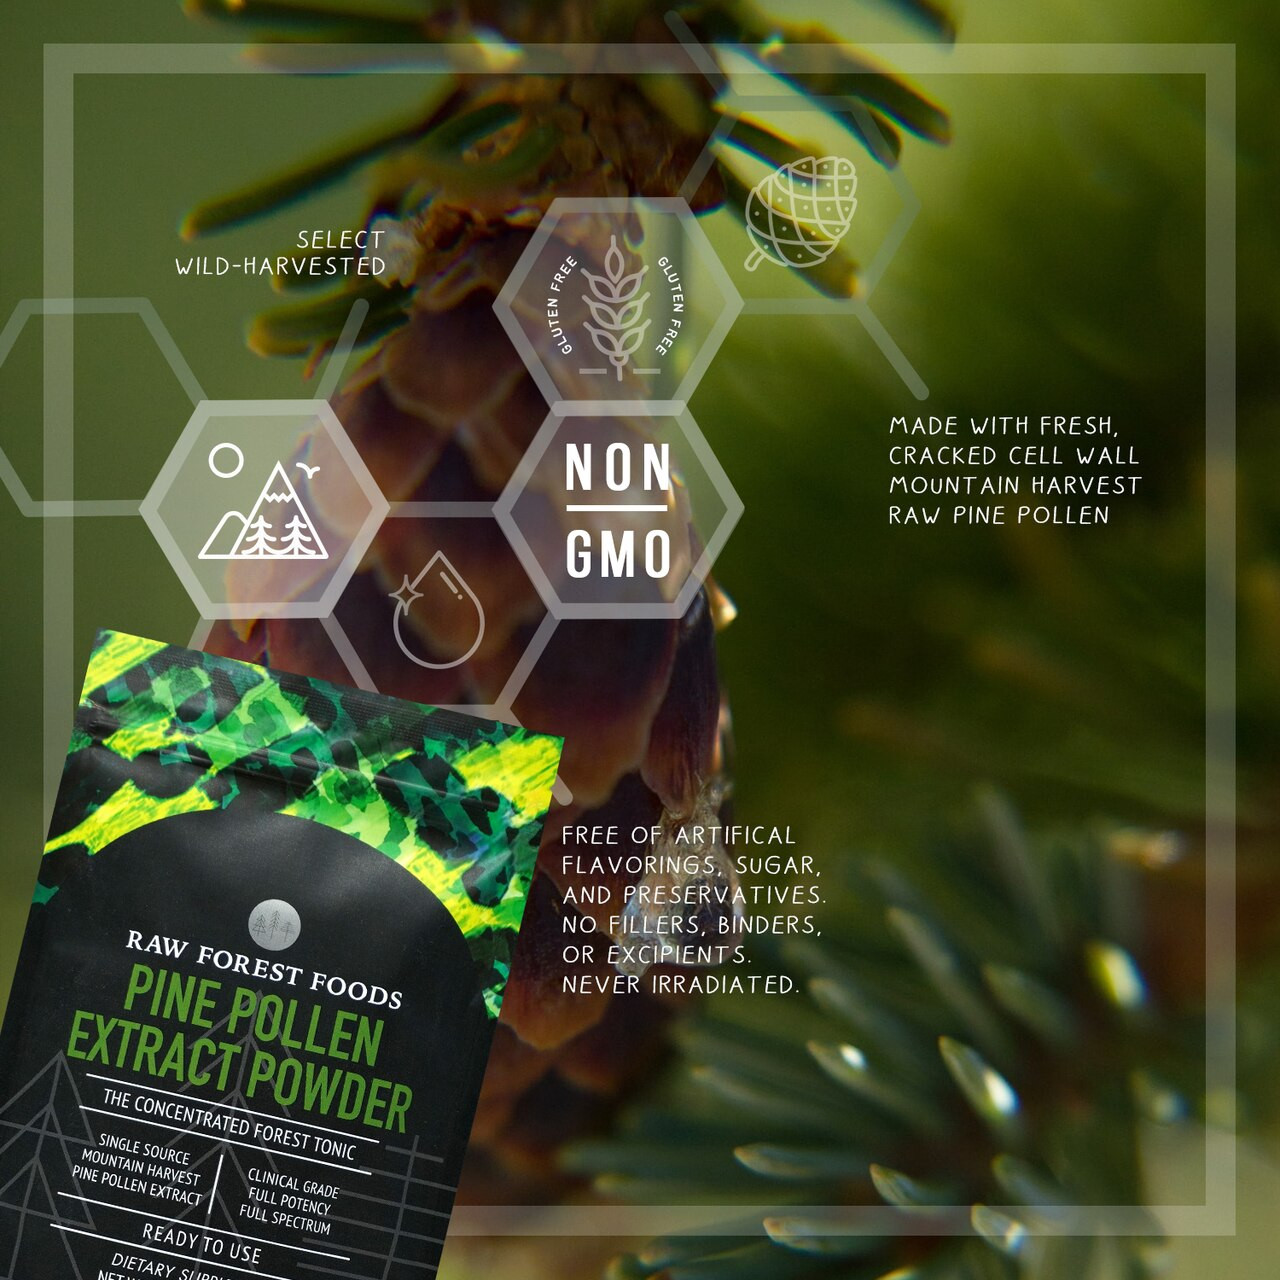 RAW Forest Foods Pine Pollen Extract Powder — Full Potency, Full Spectrum, and Unstandardized — Mountain Harvest